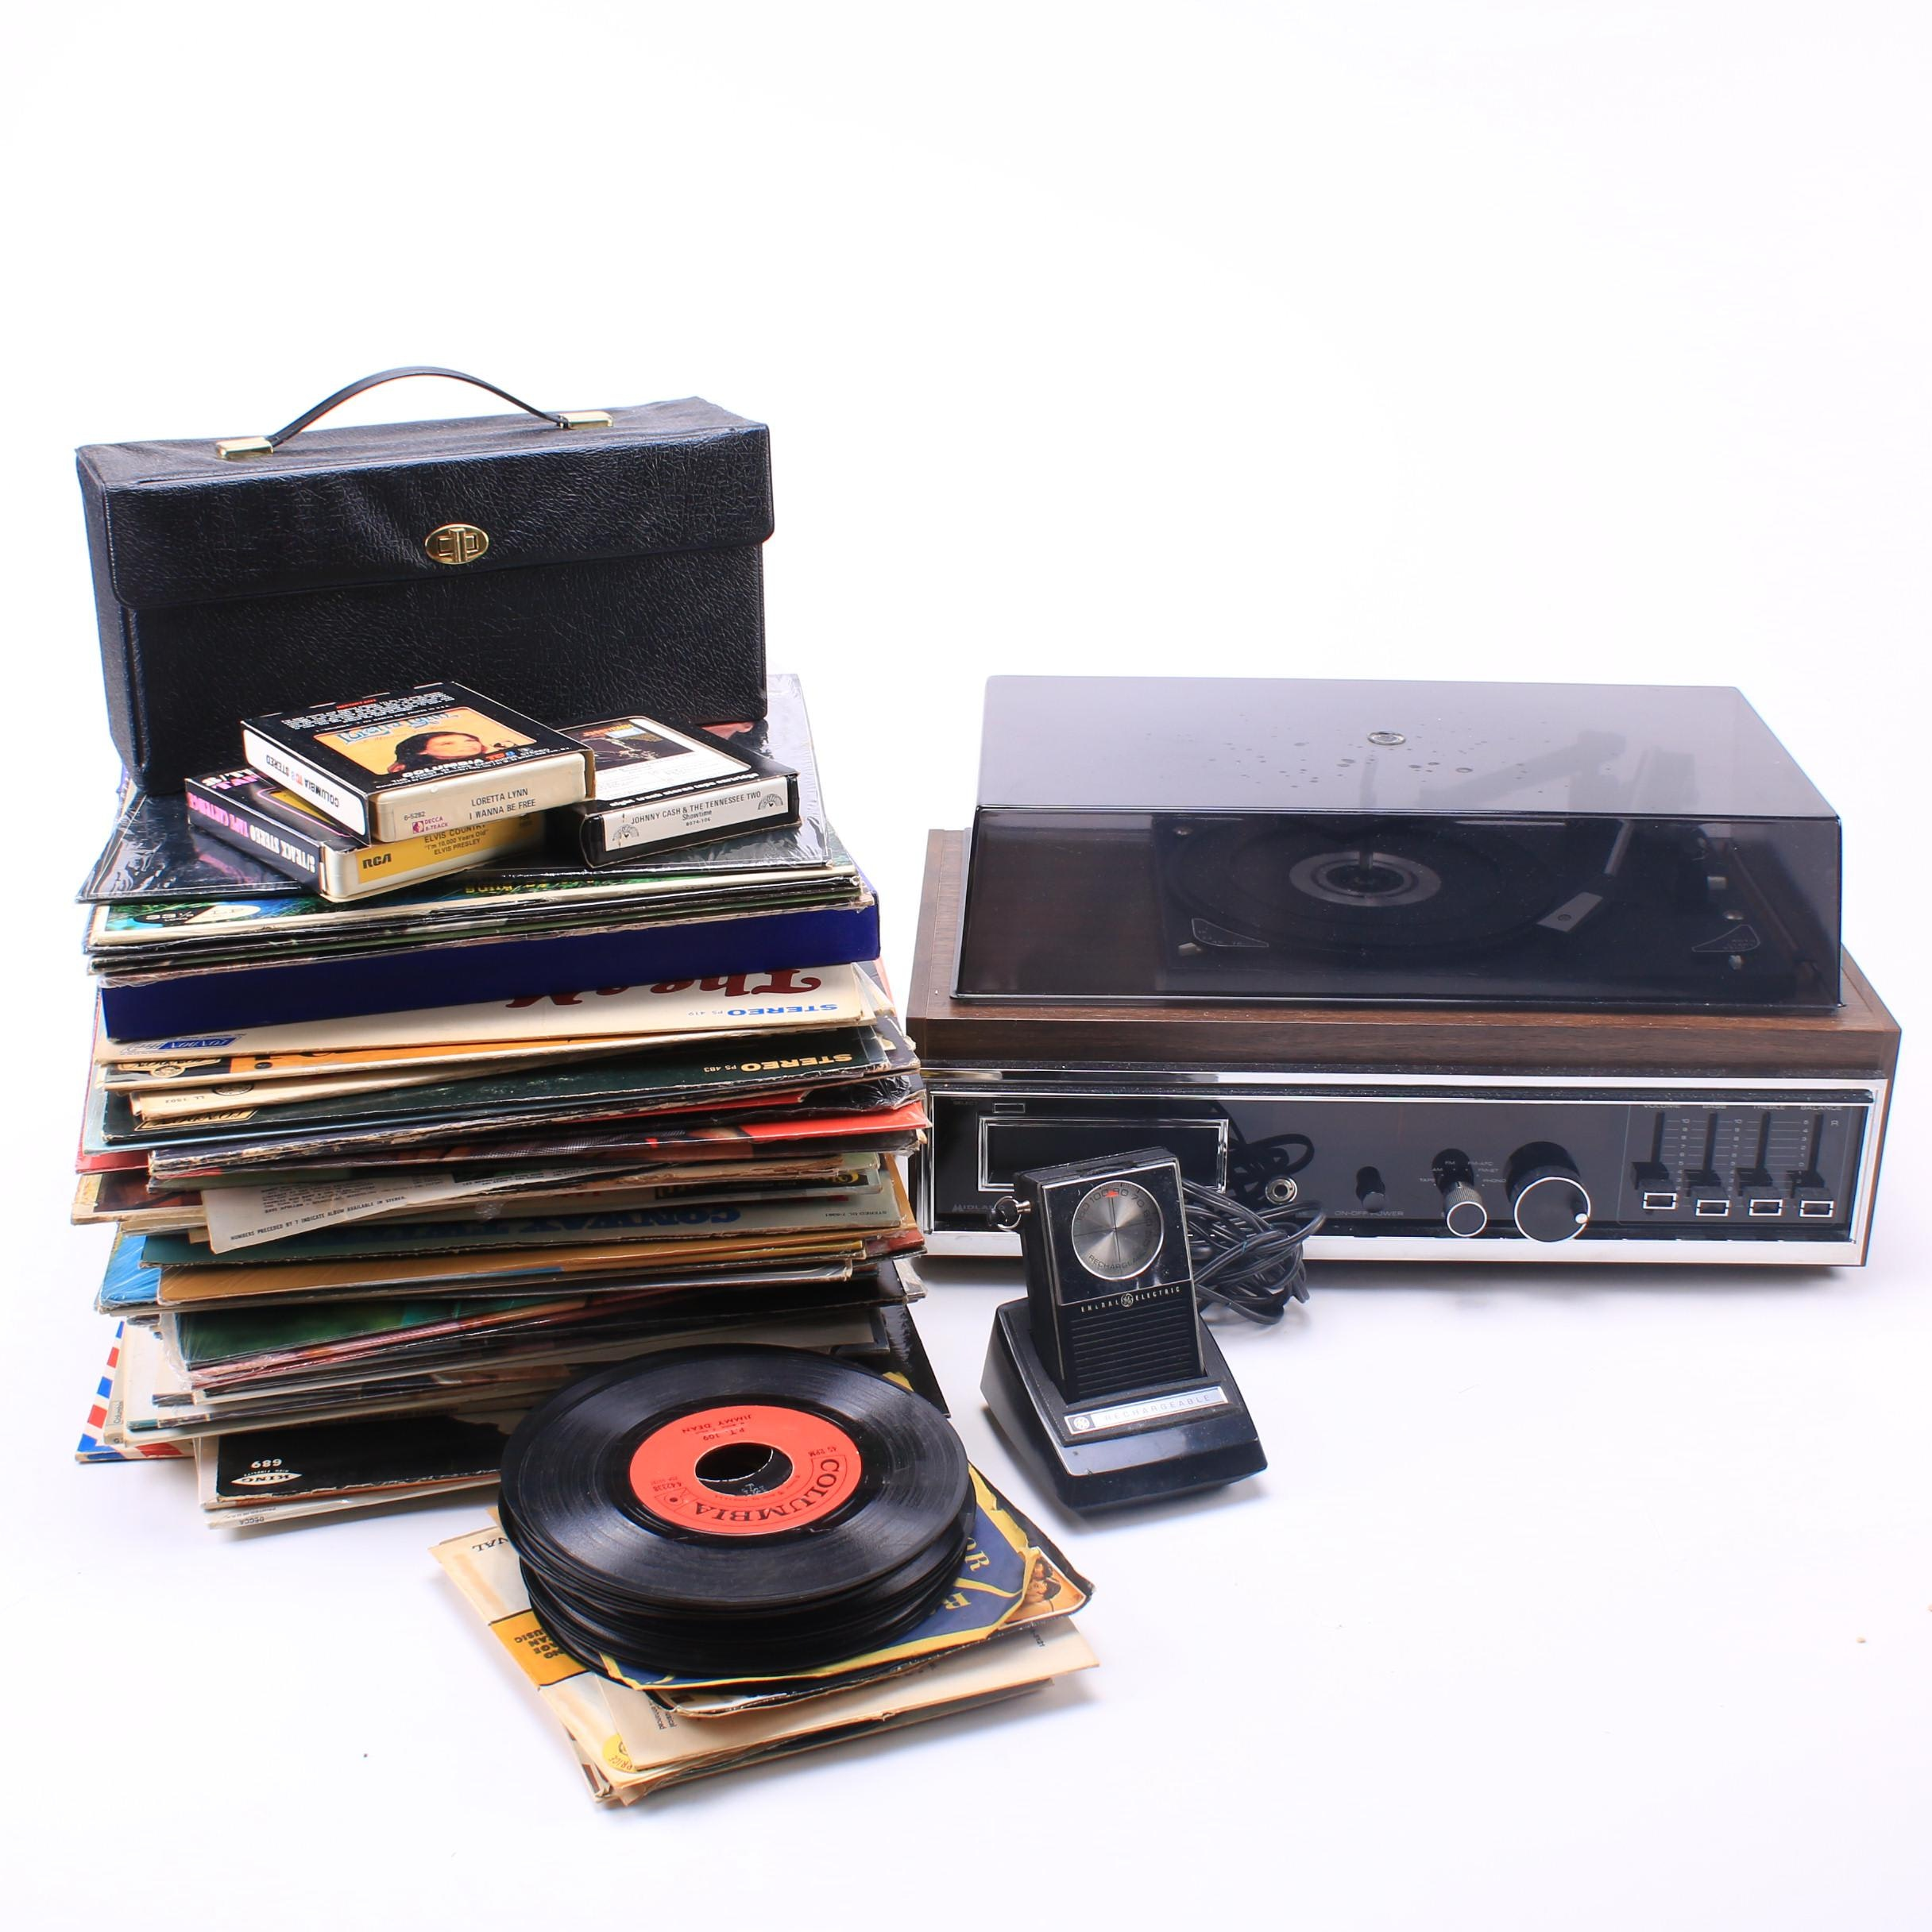 Midland Receiver with Record Player and 8-Track Including Records and More